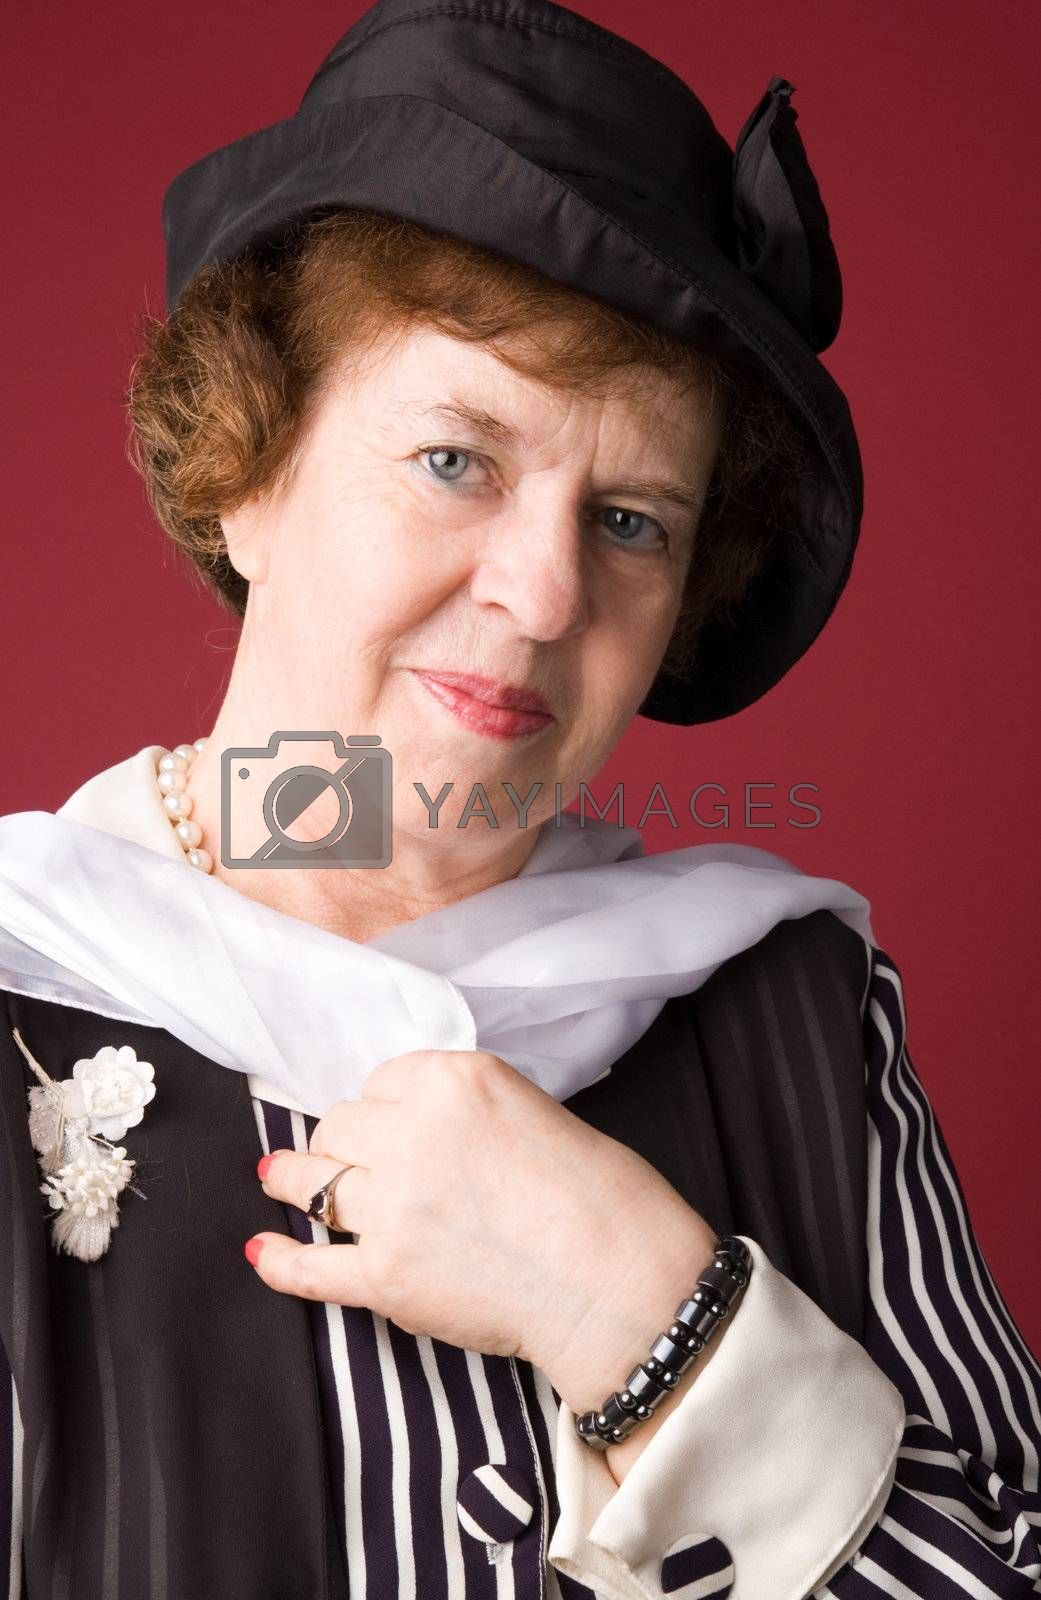 The elderly woman in a hat on a red background.